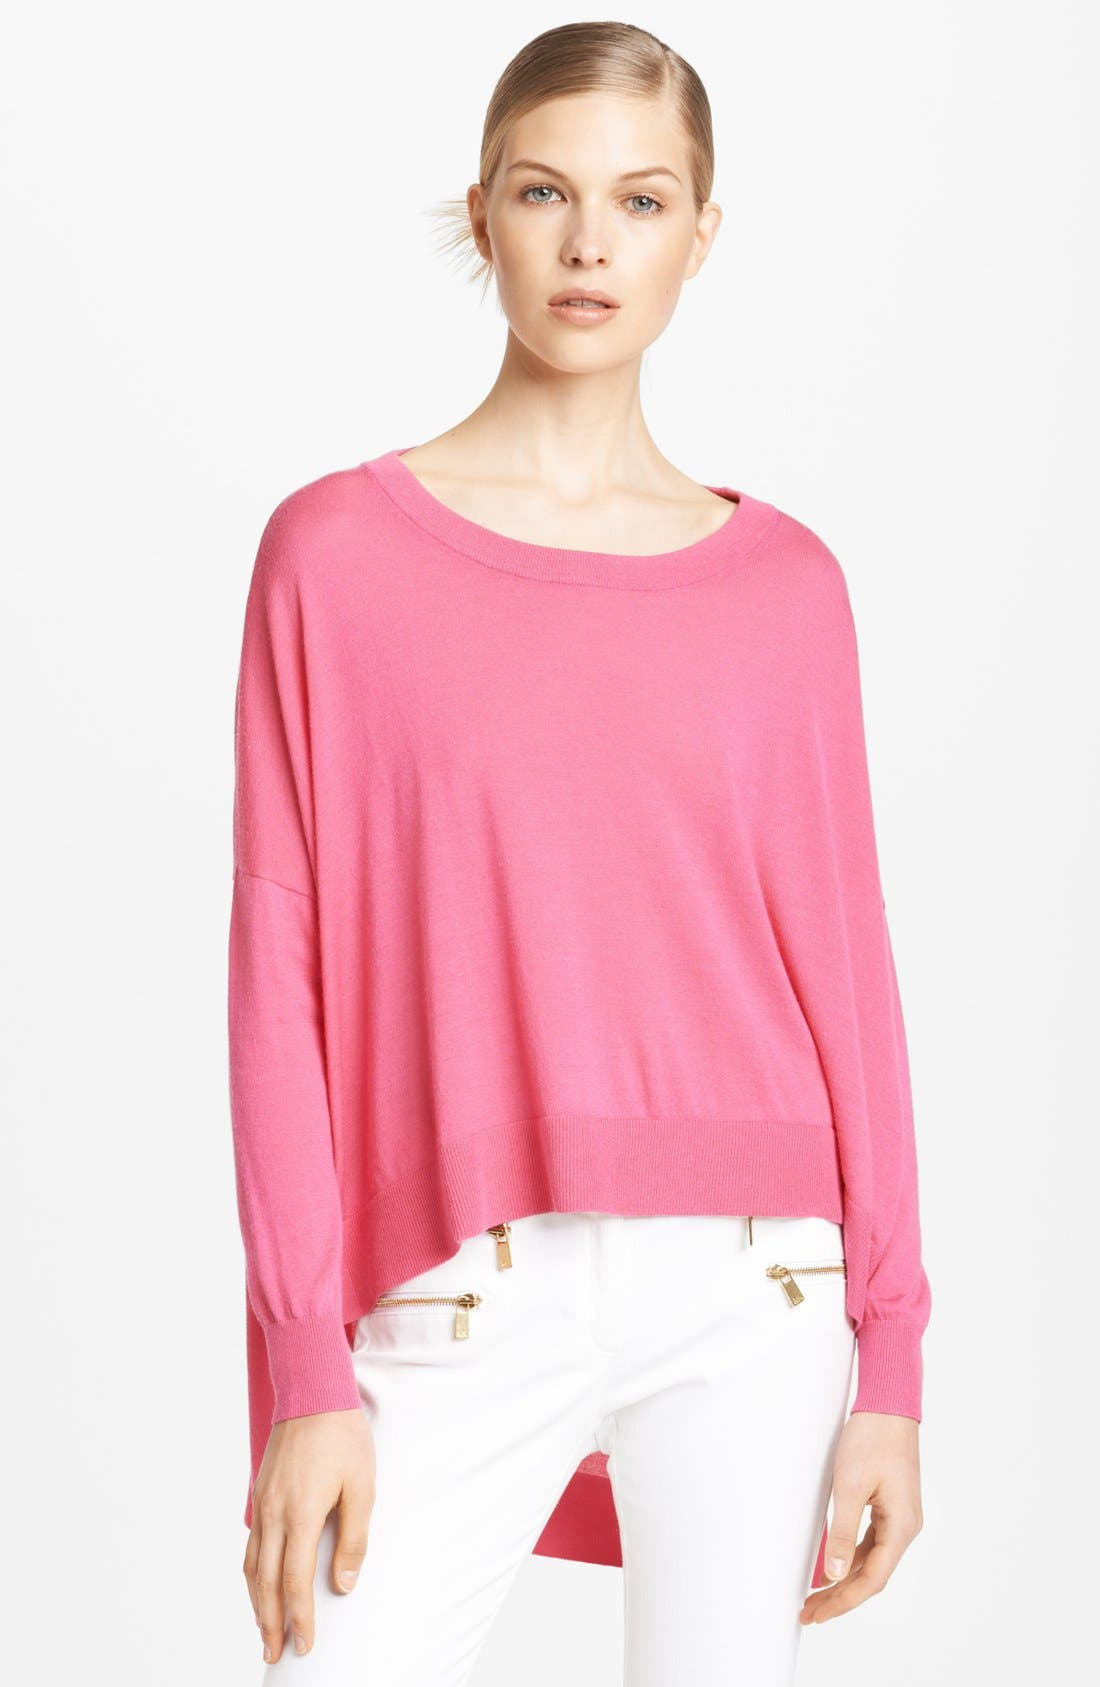 Alternate Image 1 Selected - Michael Kors High/Low Sweater